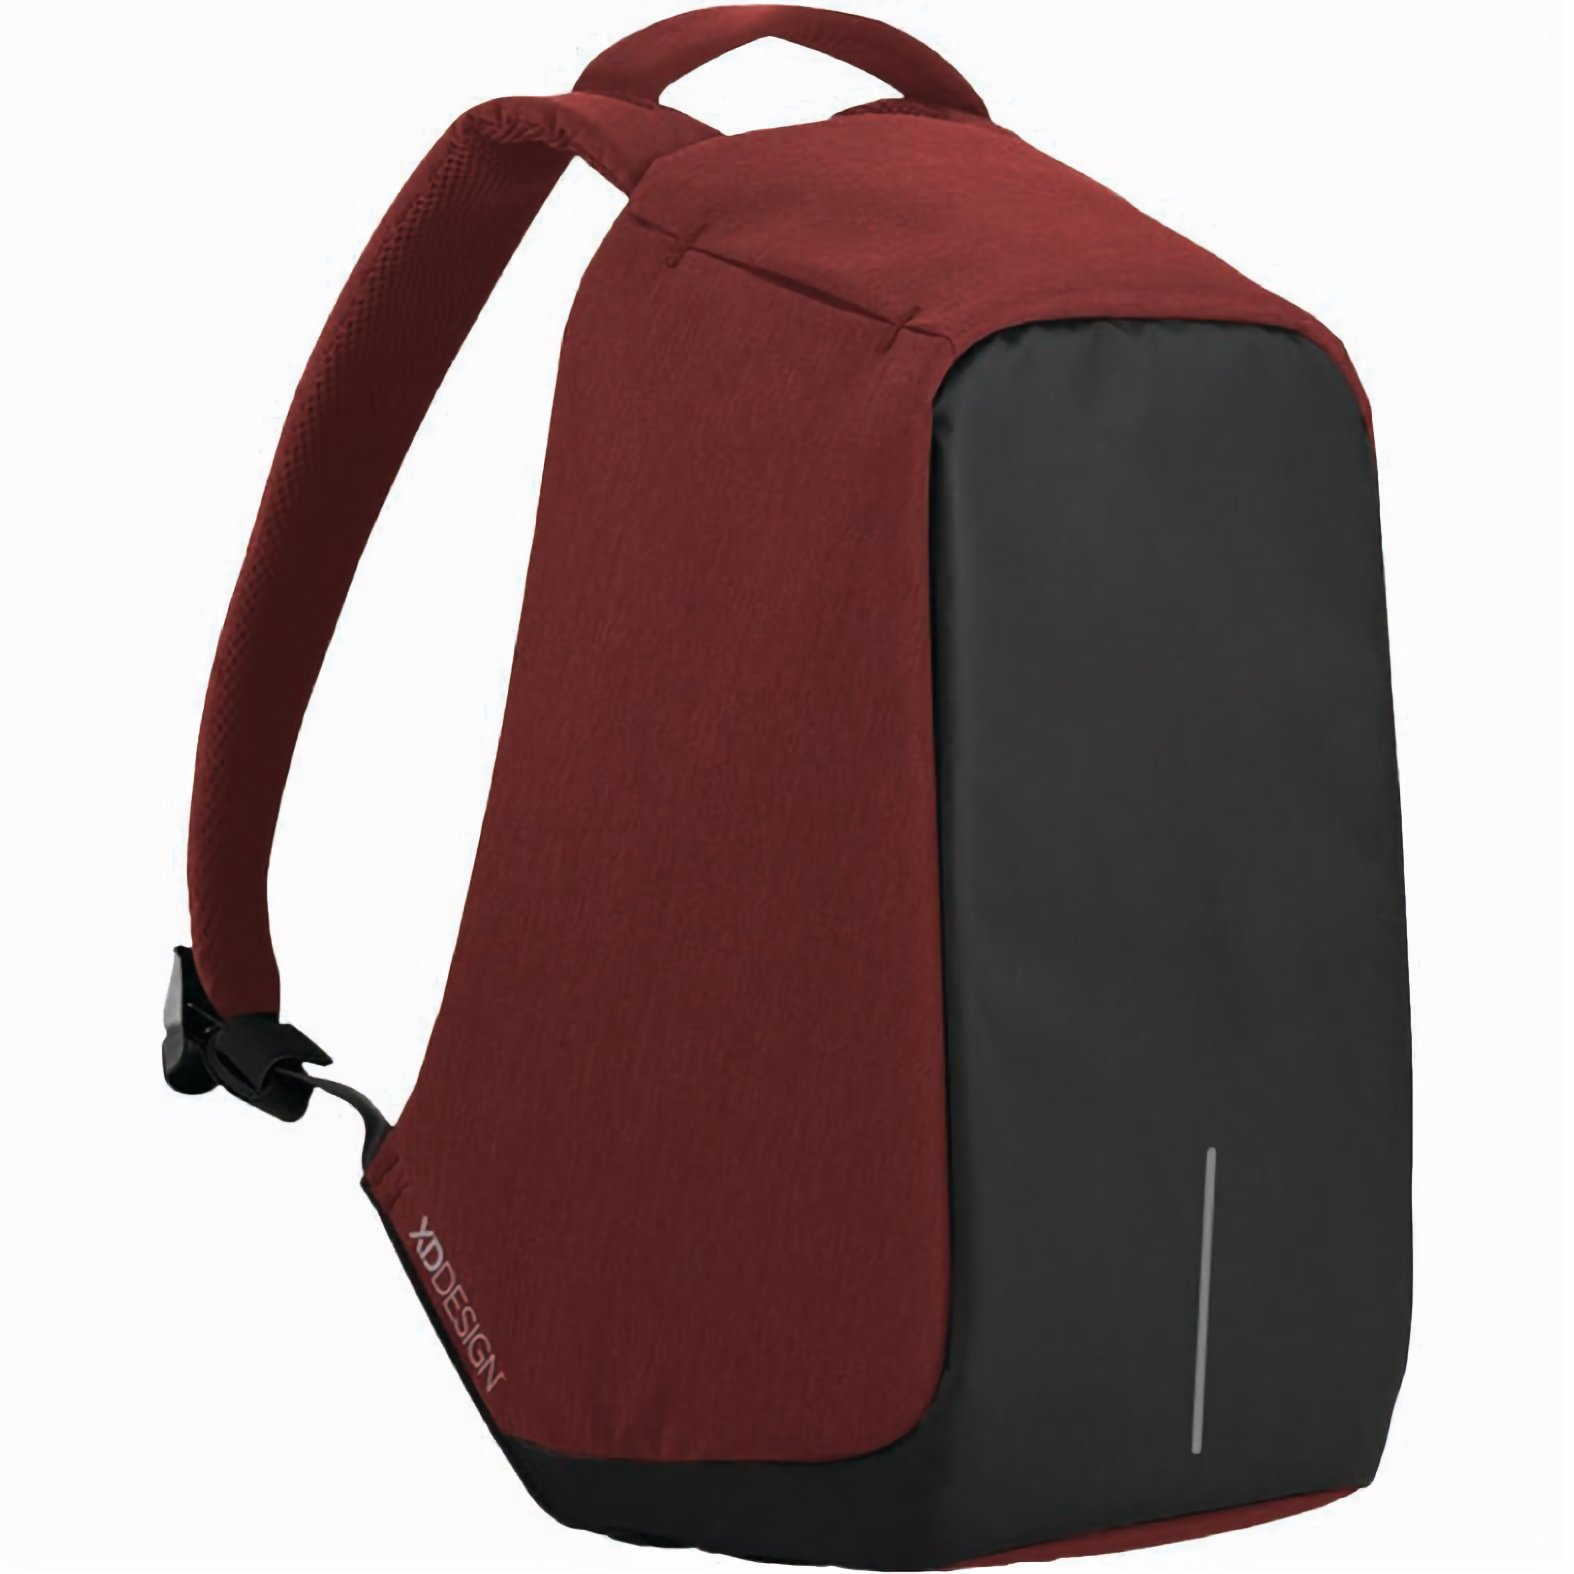 Best Backpack Brands in USA 2020